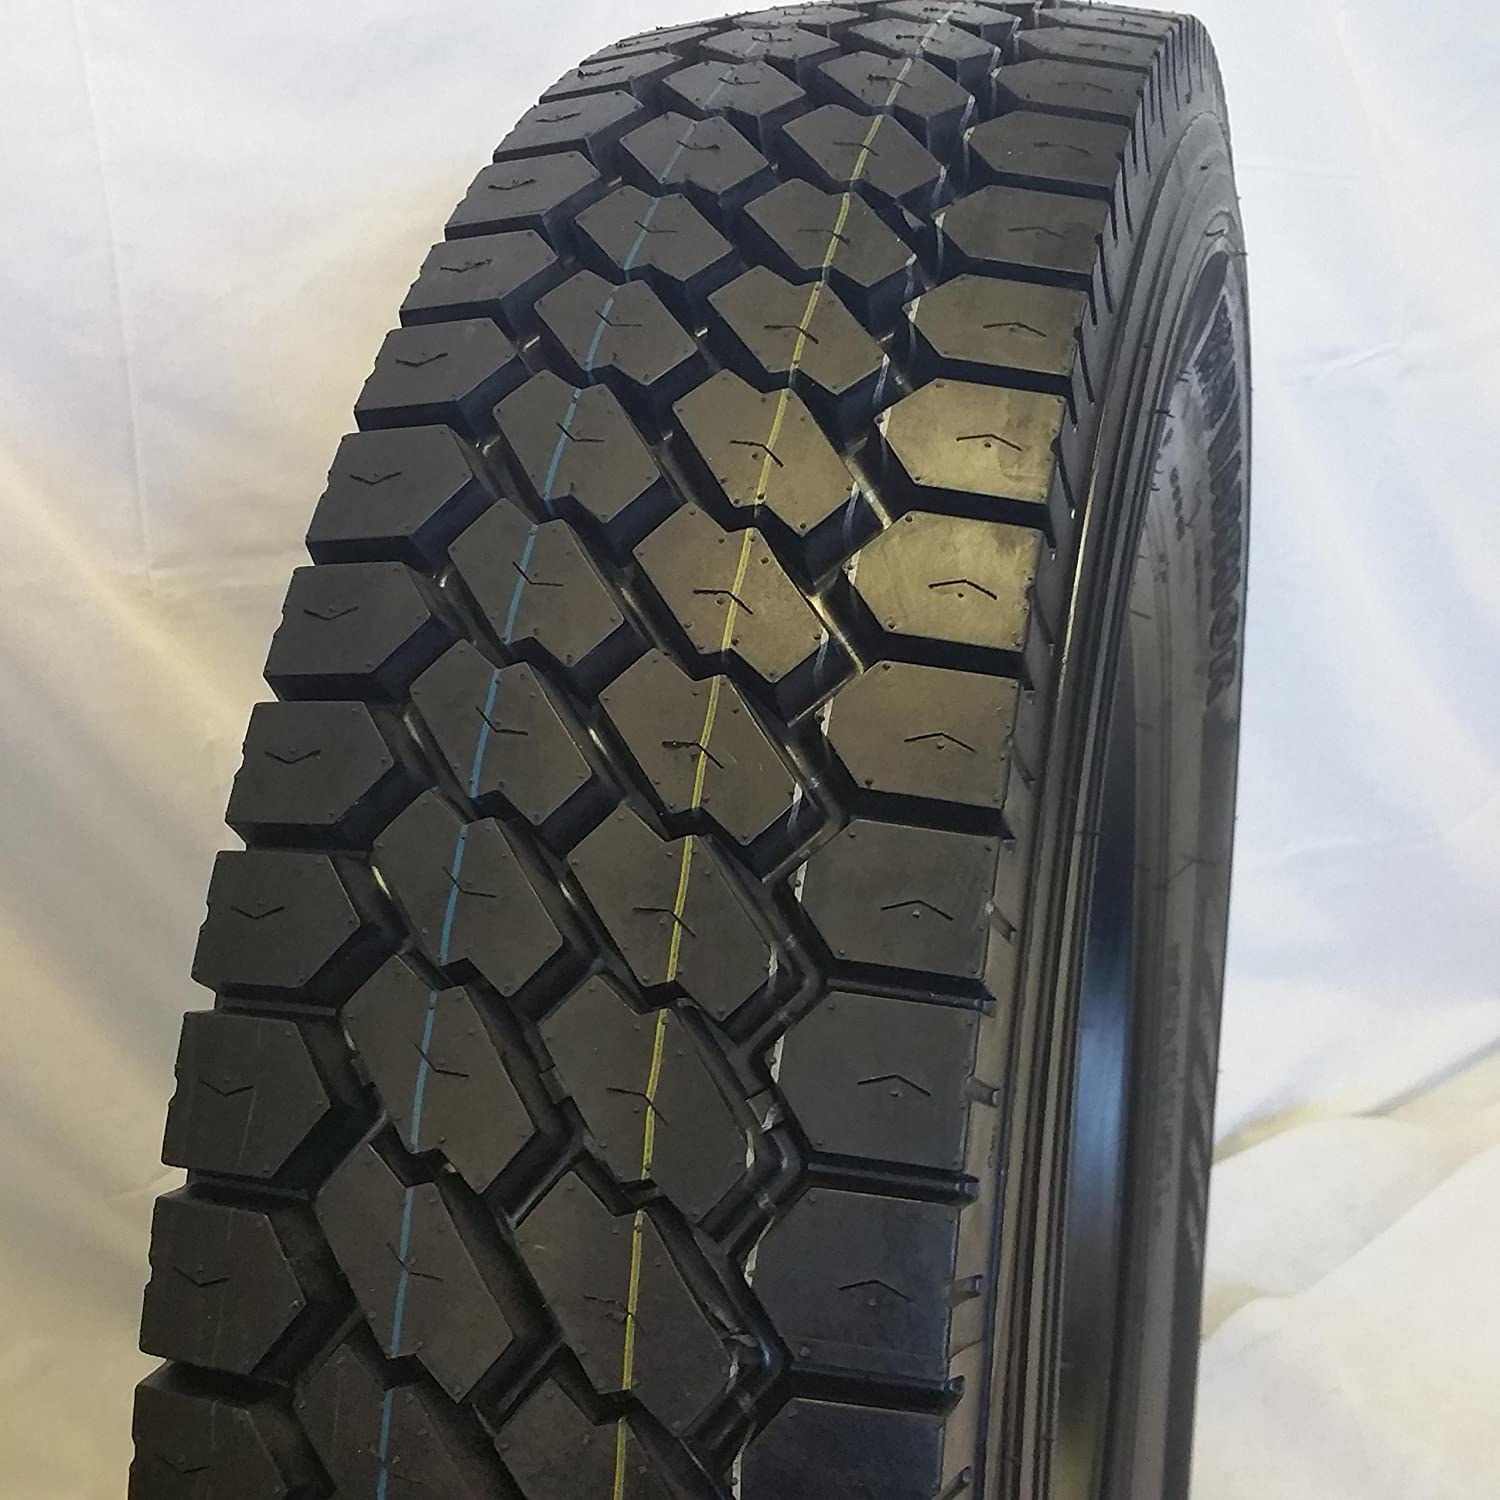 11R24.5 ROAD WARRIOR 607 RADIAL (8 - DRIVE TIRES) 16 PLY RATING ROAD WARRIOR TIRES